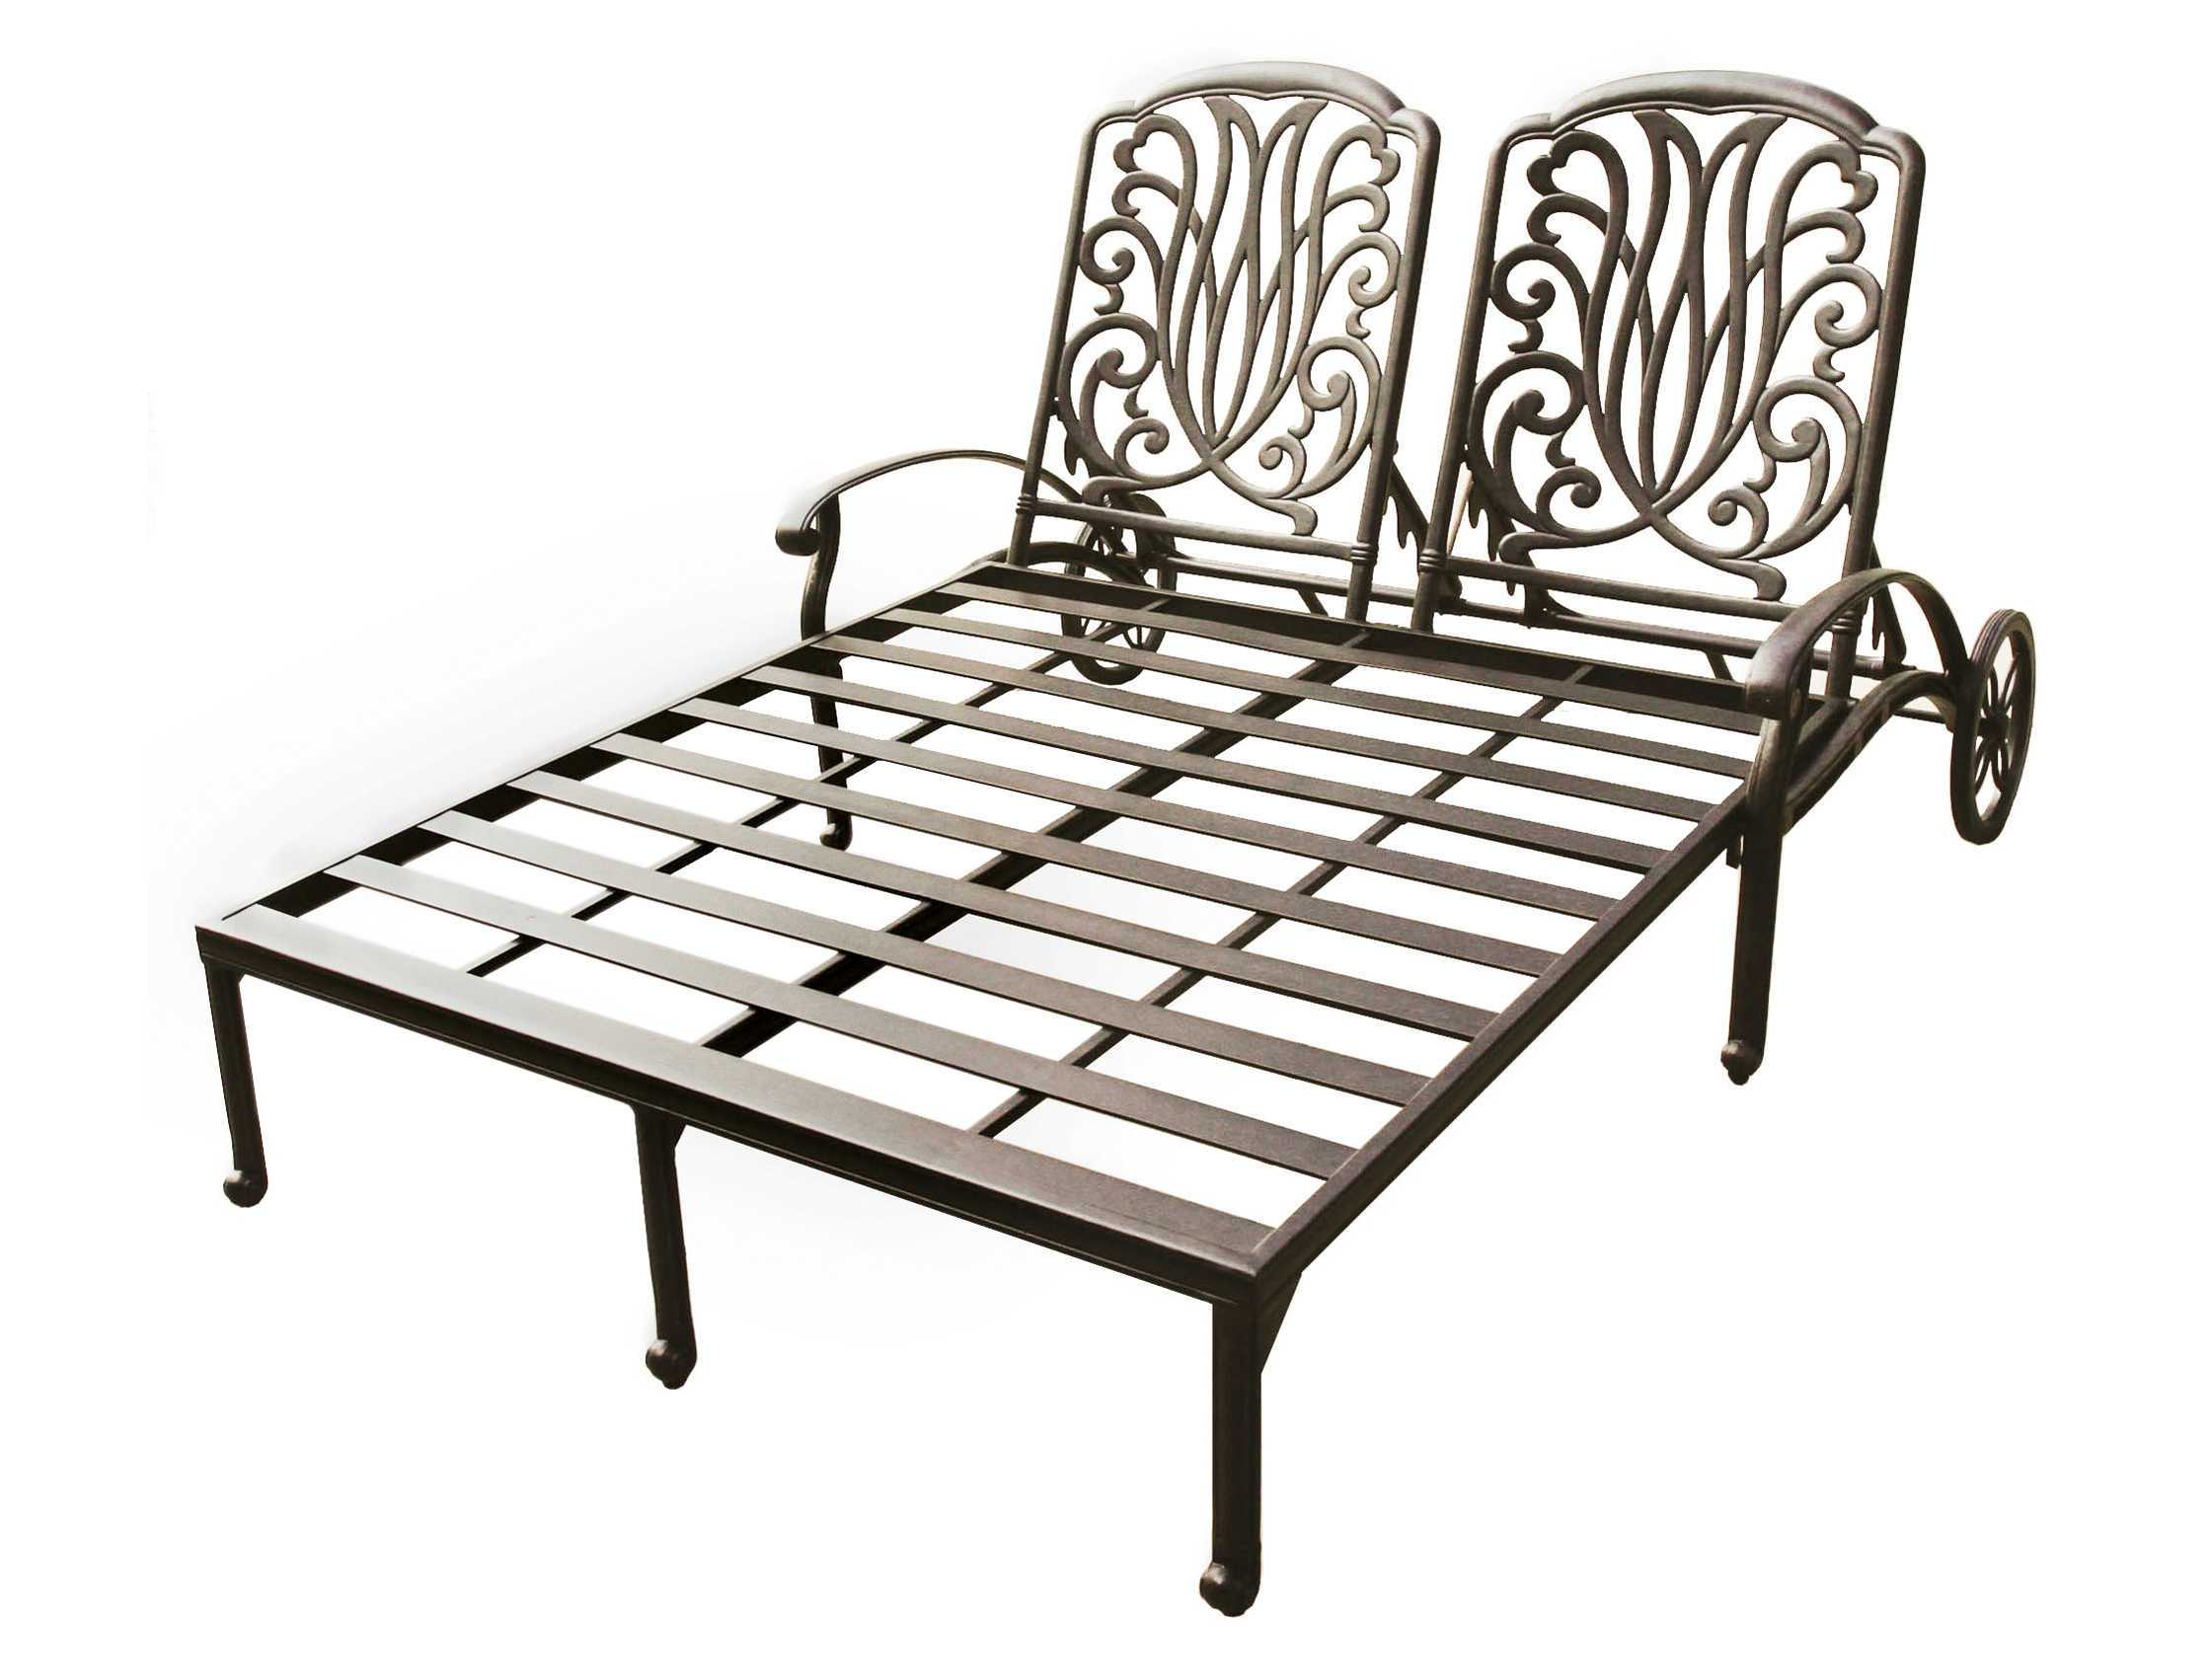 darlee outdoor living elisabeth cast aluminum antique bronze double chaise lounge. Black Bedroom Furniture Sets. Home Design Ideas